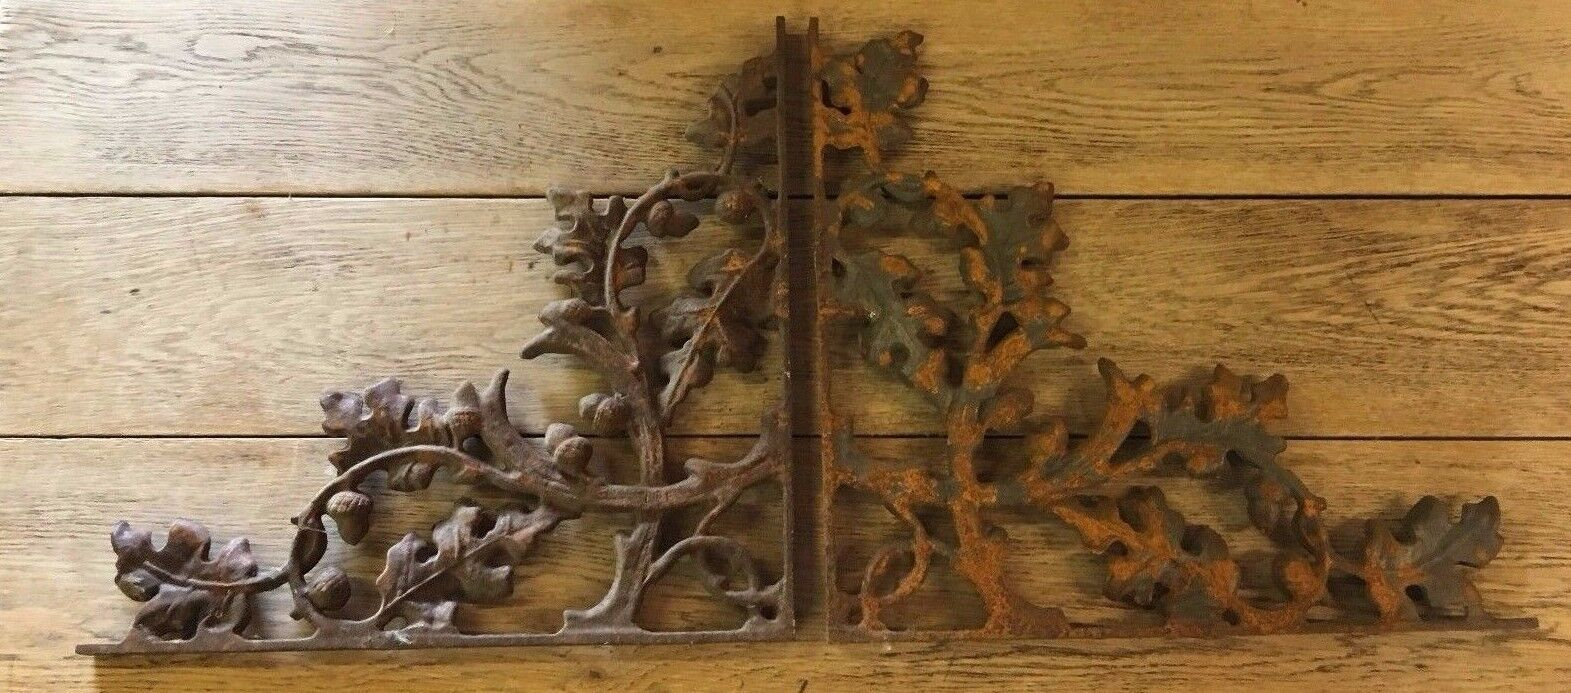 PAIR OF CAST IRON BRACKETS / SHELVING / ACORN AND LEAF DESIGN / WALL DECORATIONS - Browsers Emporium